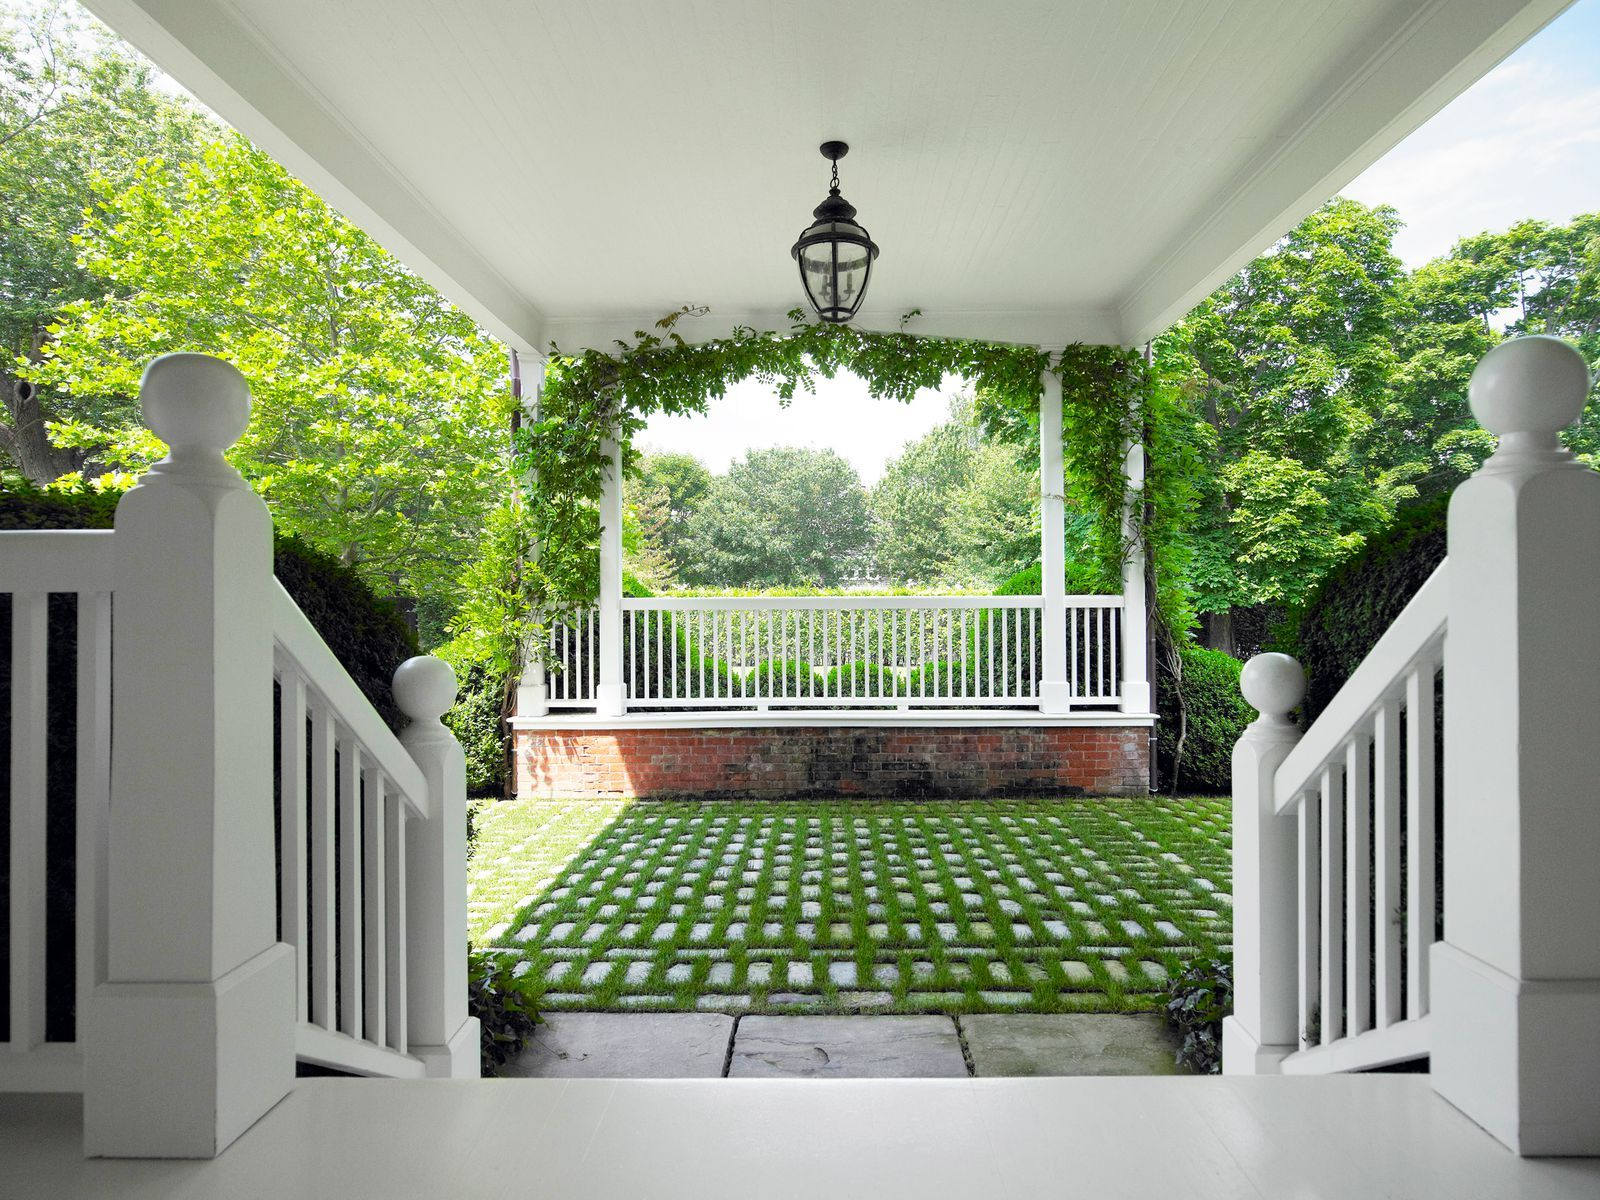 13 Ways to Make Your Driveway 10 Times More Attractive